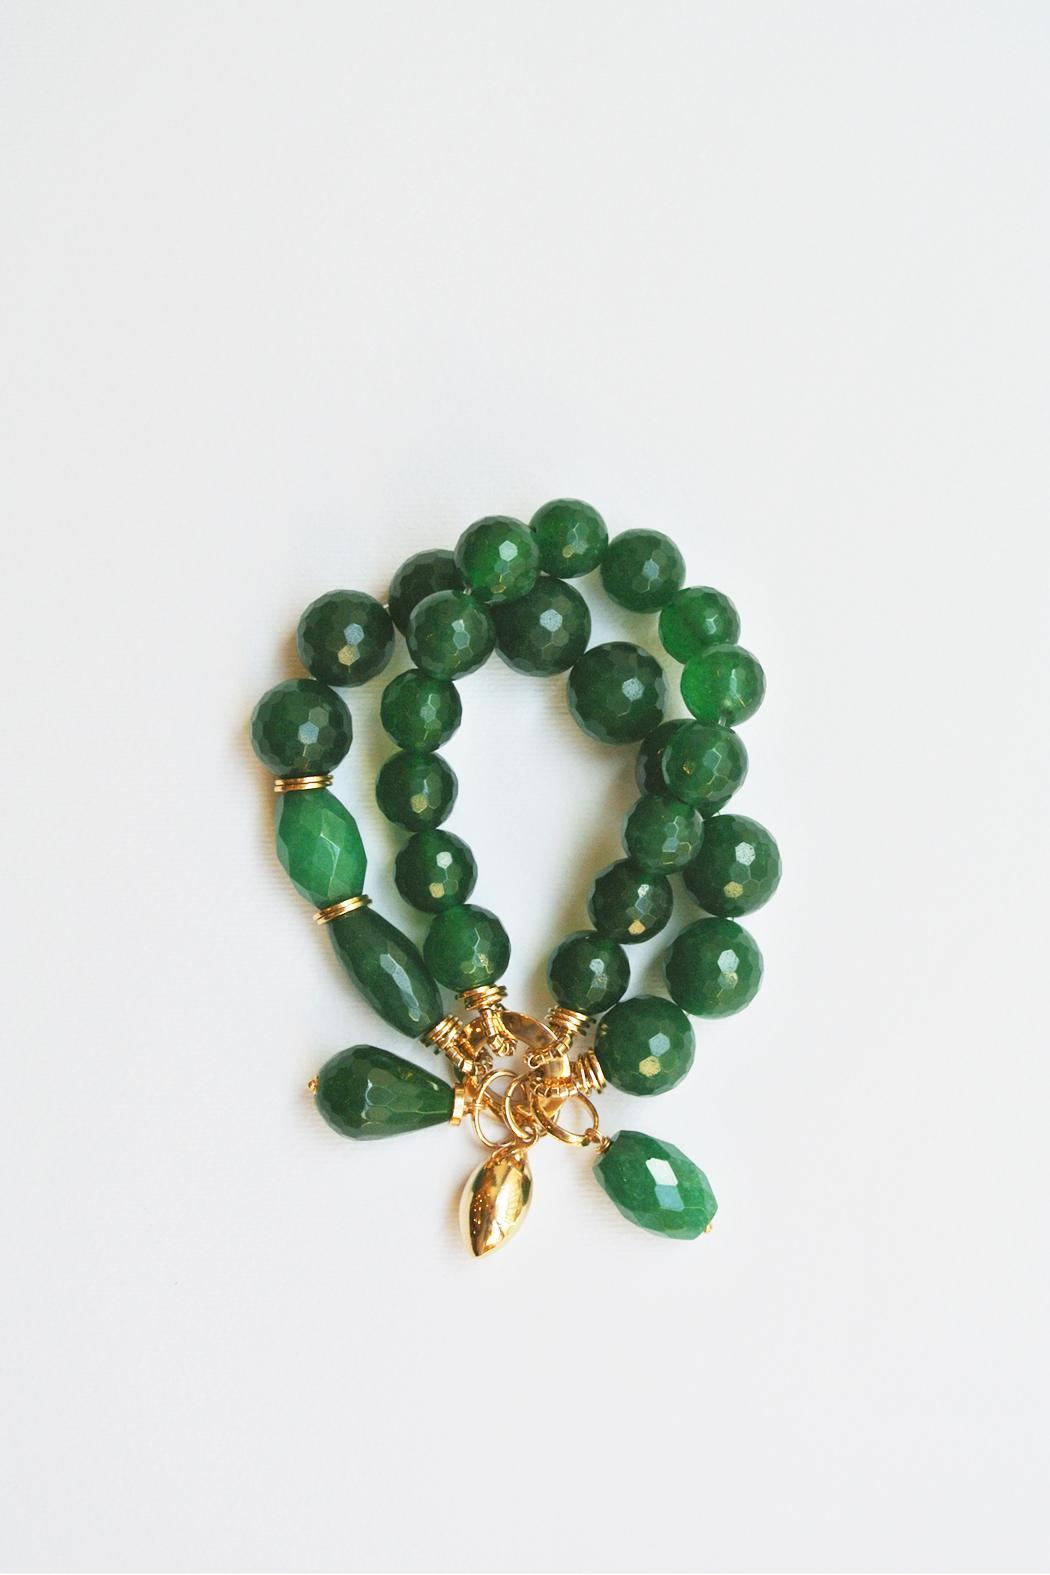 balangand 227 s green agate bracelet from milan by balangand 227 s